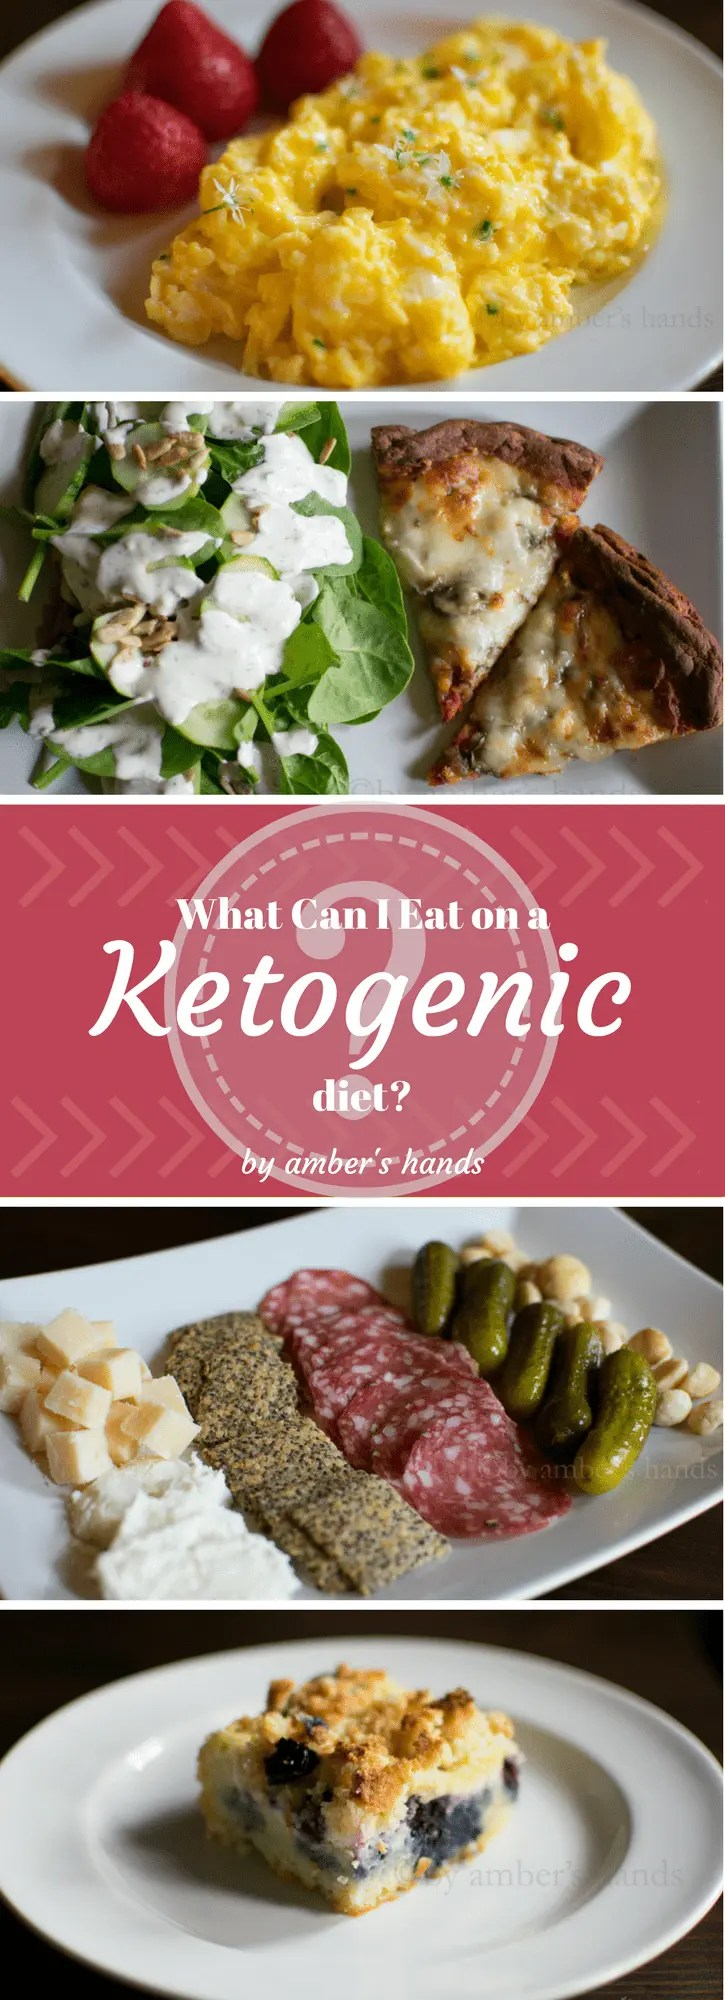 My Health Journey and a Ketogenic Diet